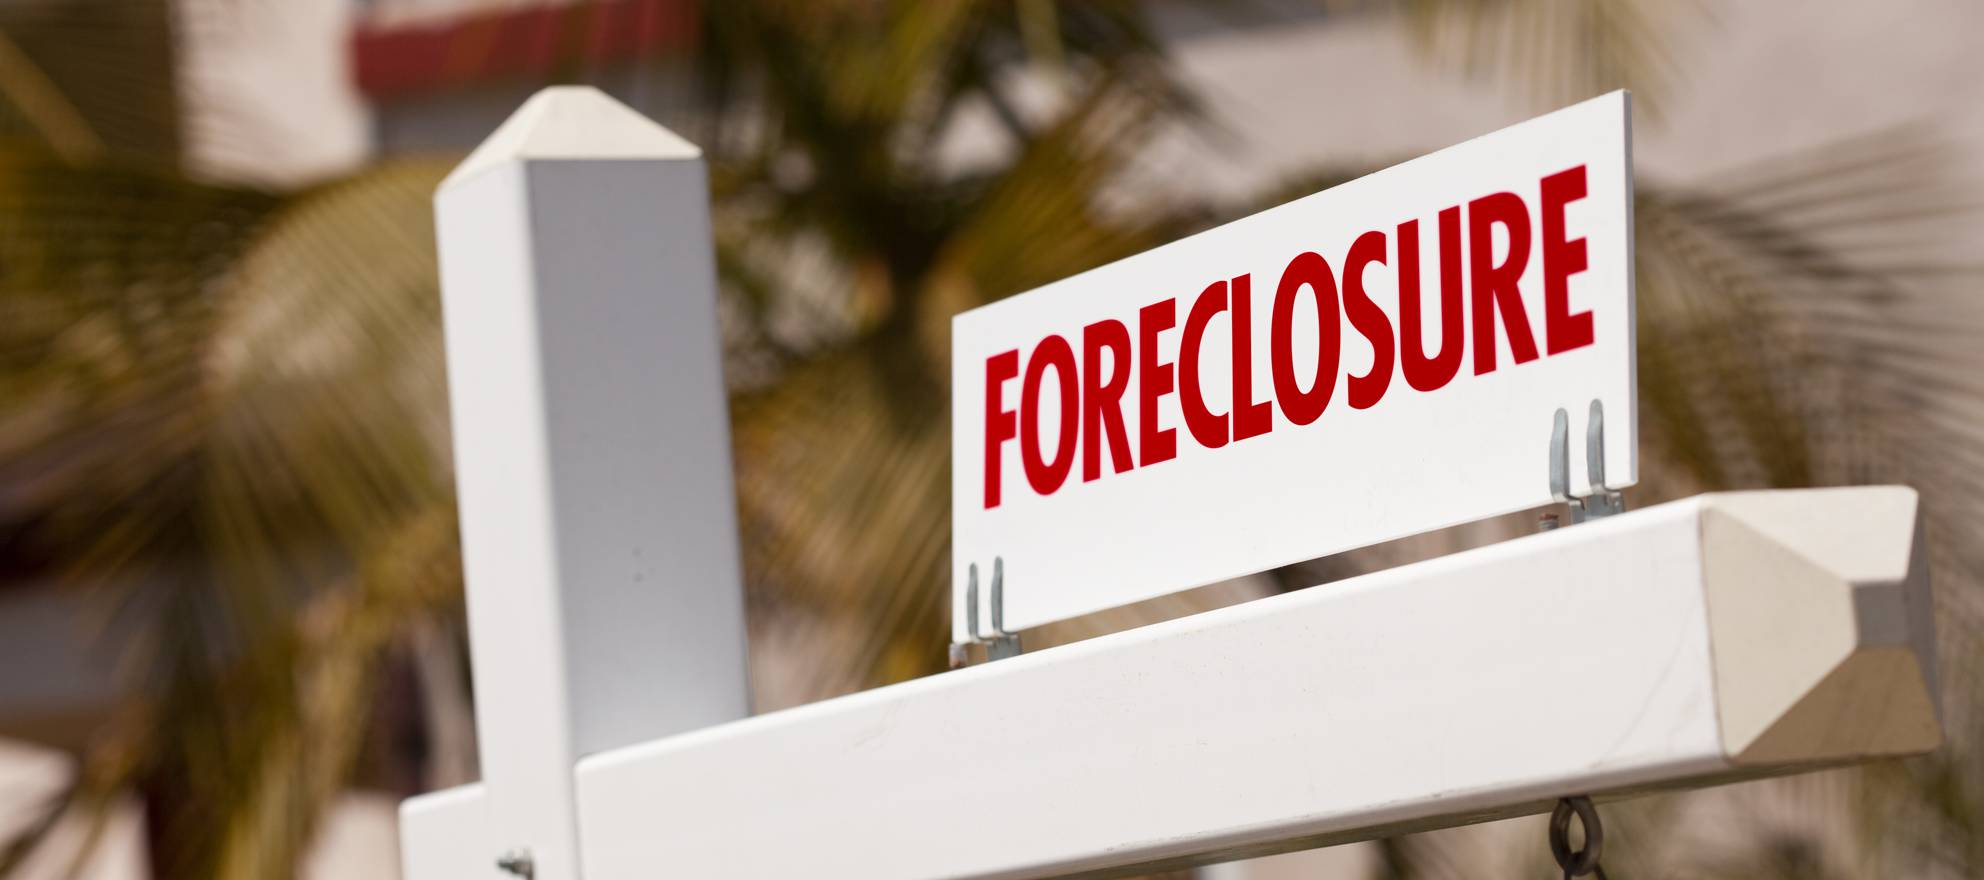 Foreclosure pipeline still full in Florida